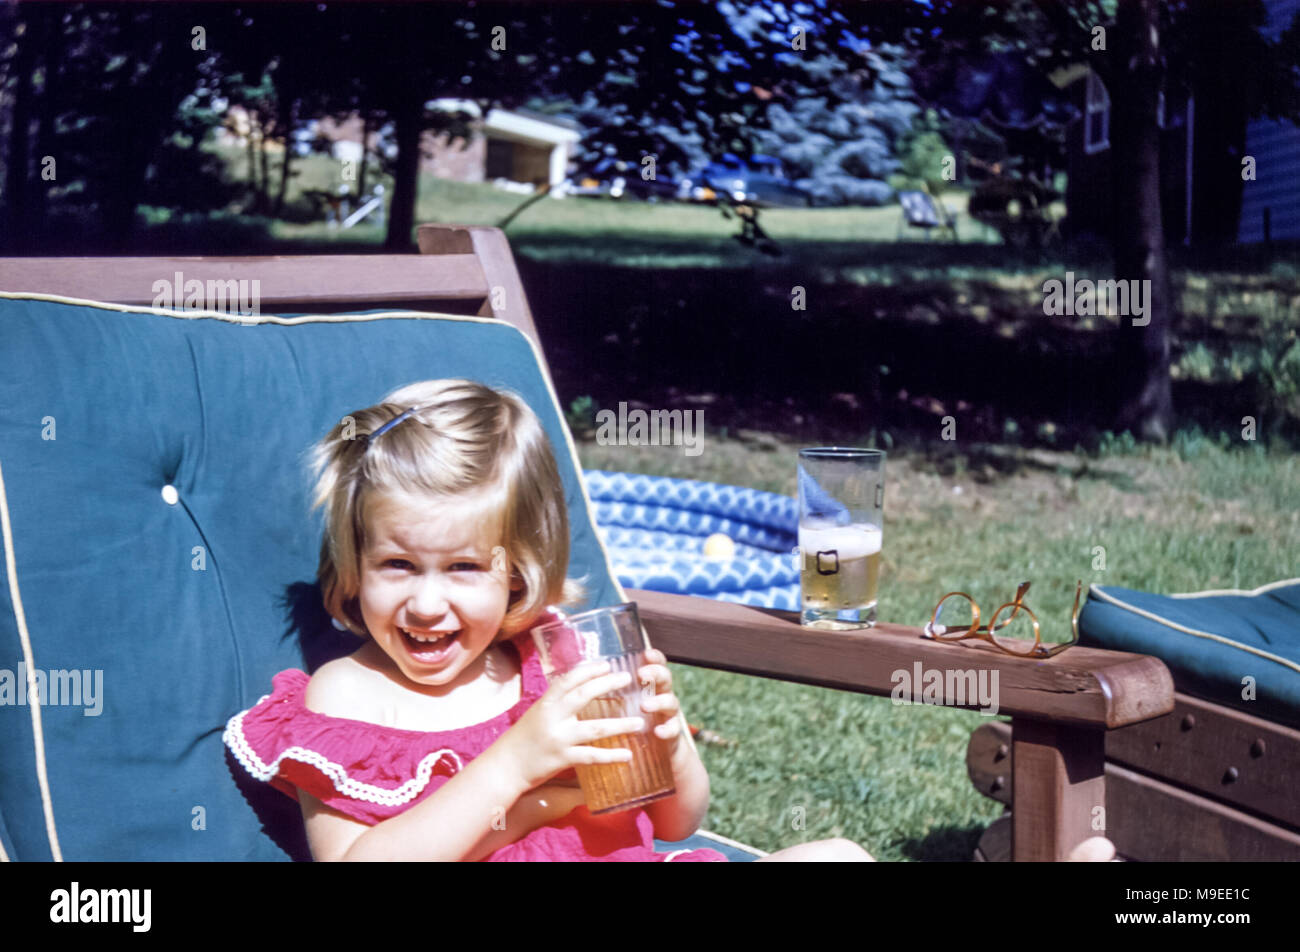 2 To 3 Year Old Smiling Young Girl Sitting In A Garden Chair Holding Plastic Cup Of Juice With Paddling Pool On Summer Day